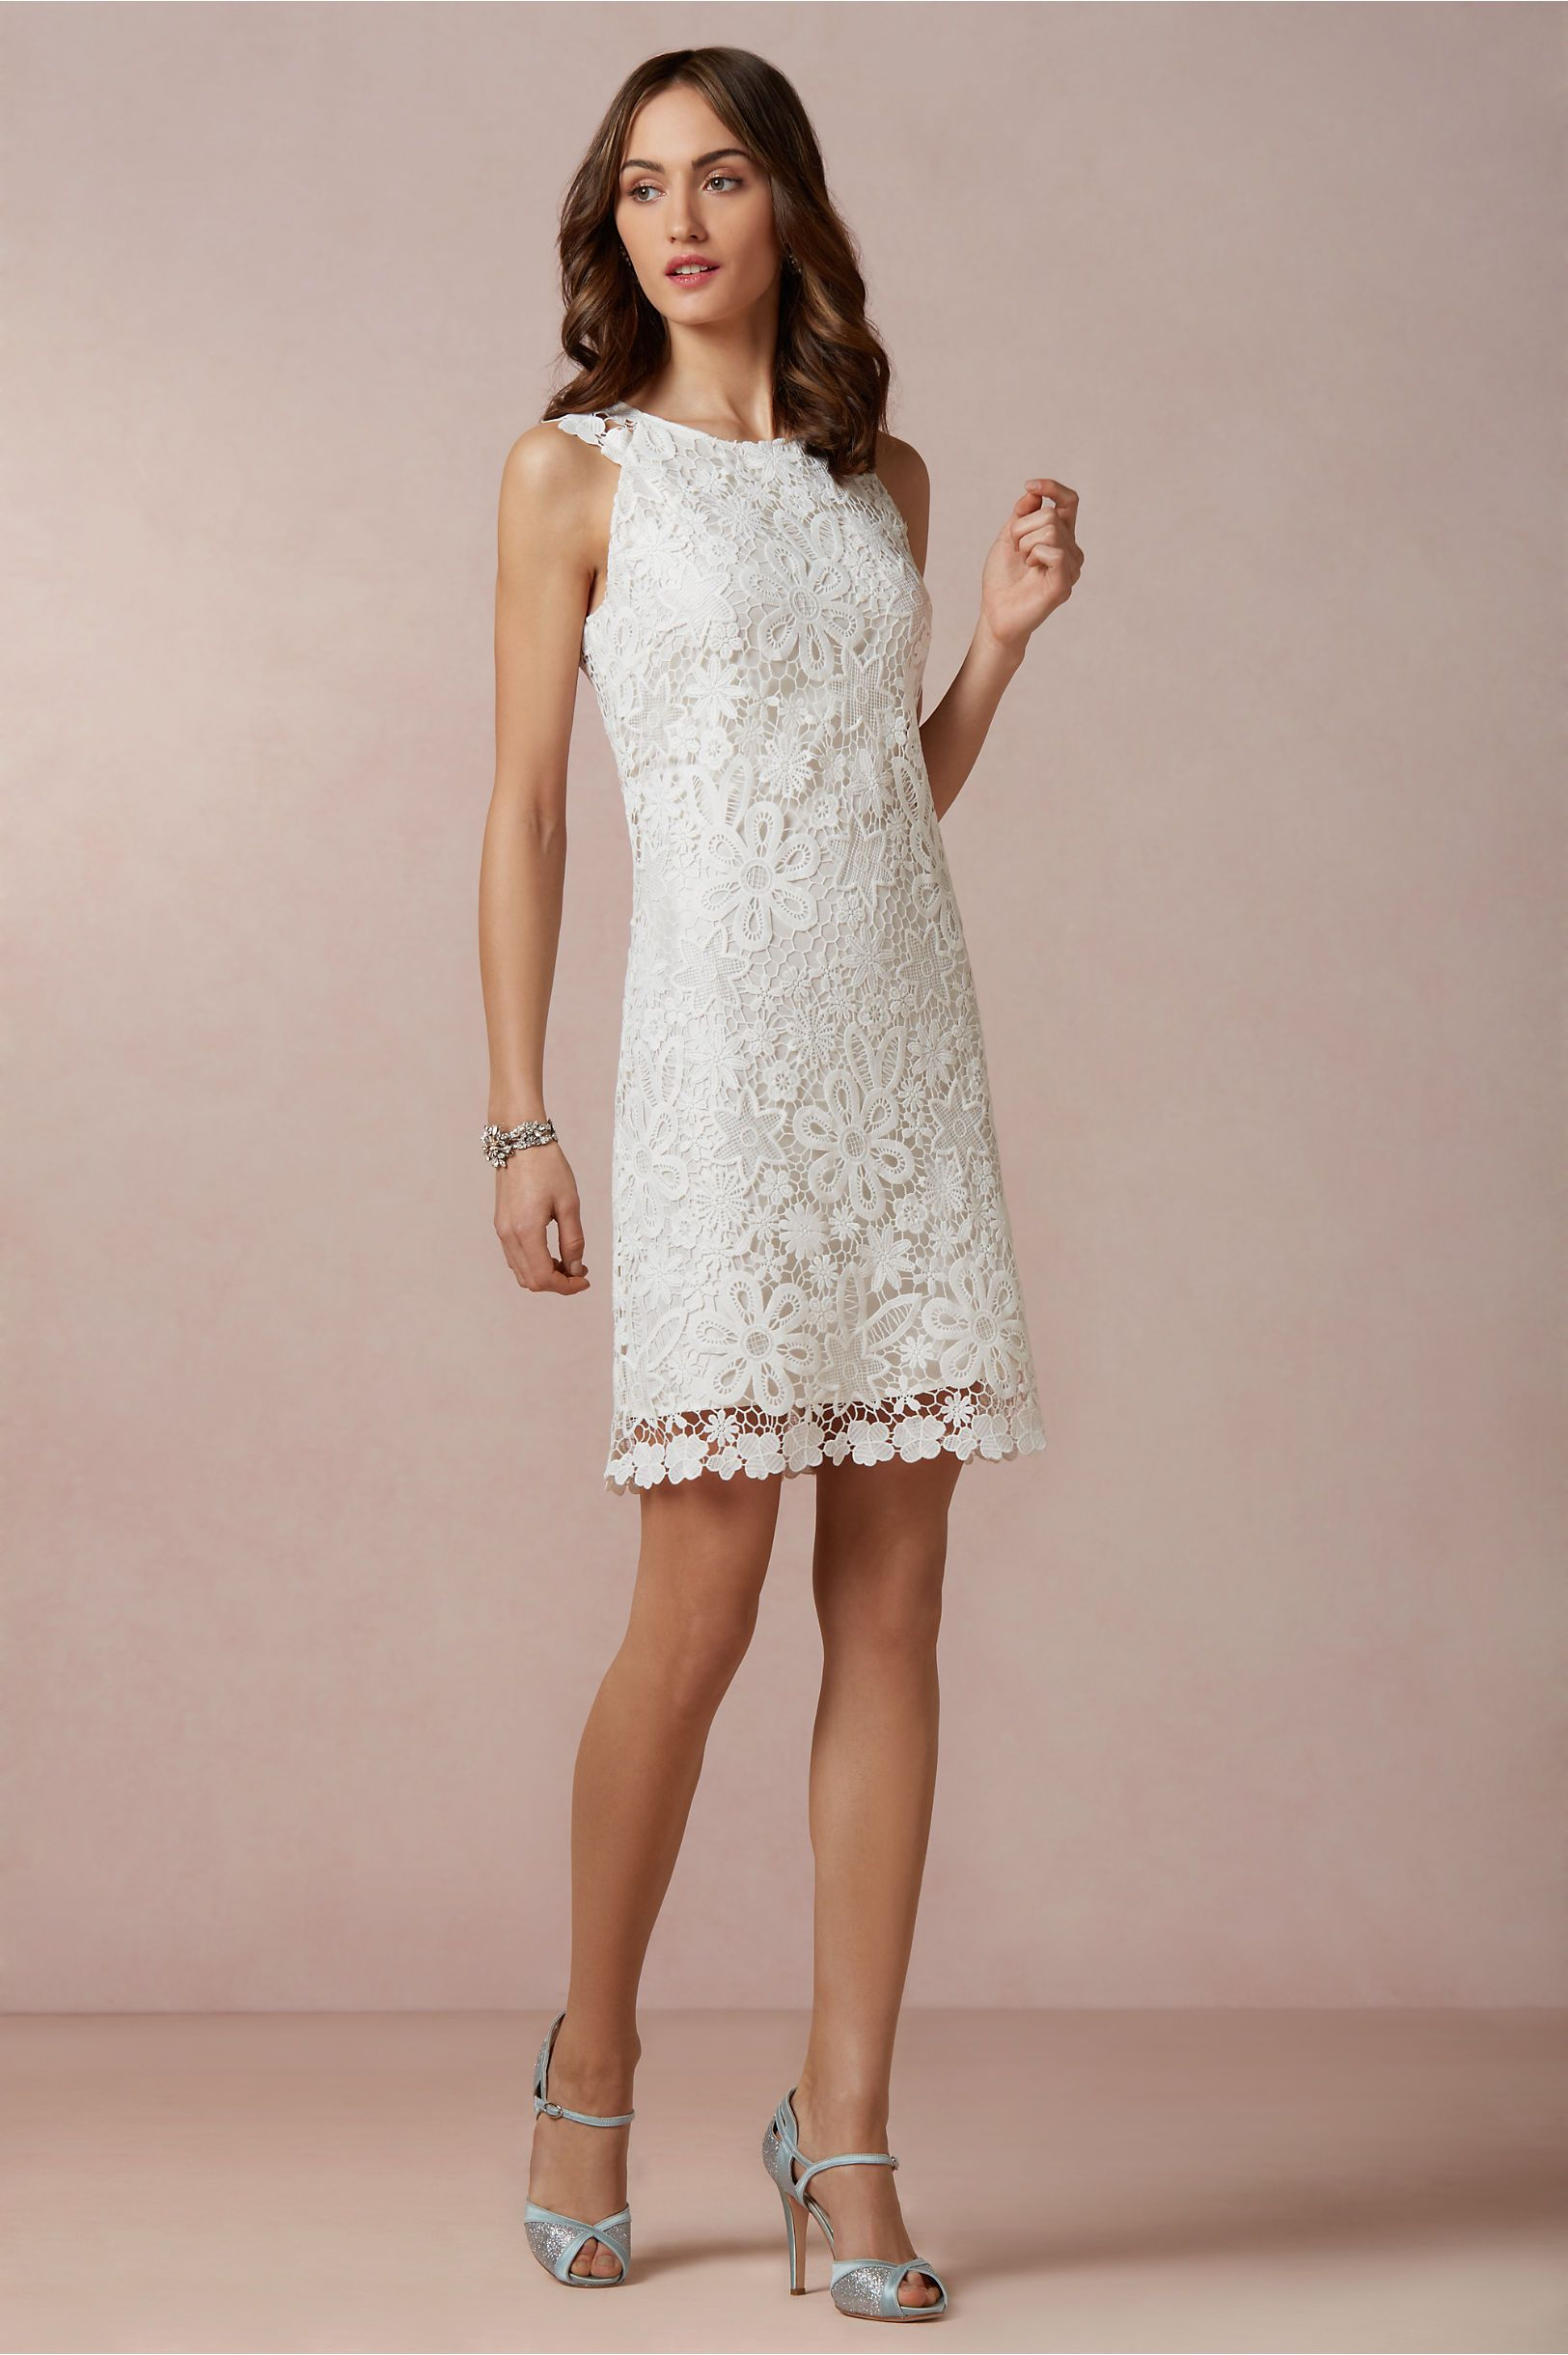 fiona dress in sale dresses at bhldn | petite evening